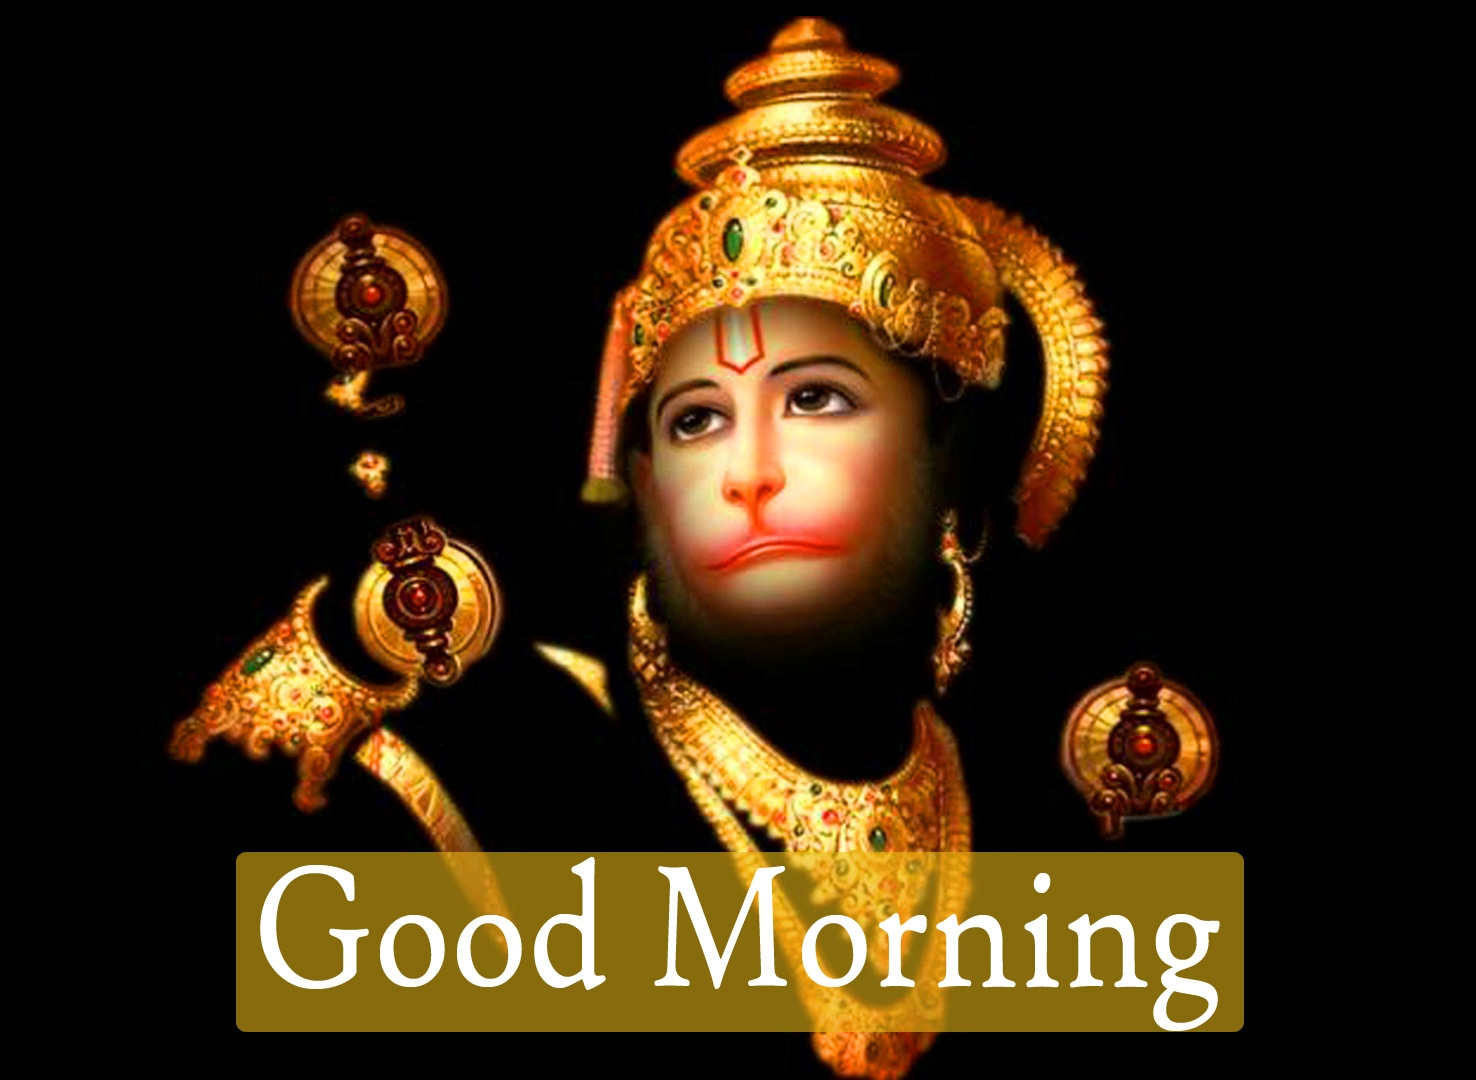 Religious good morning images 11